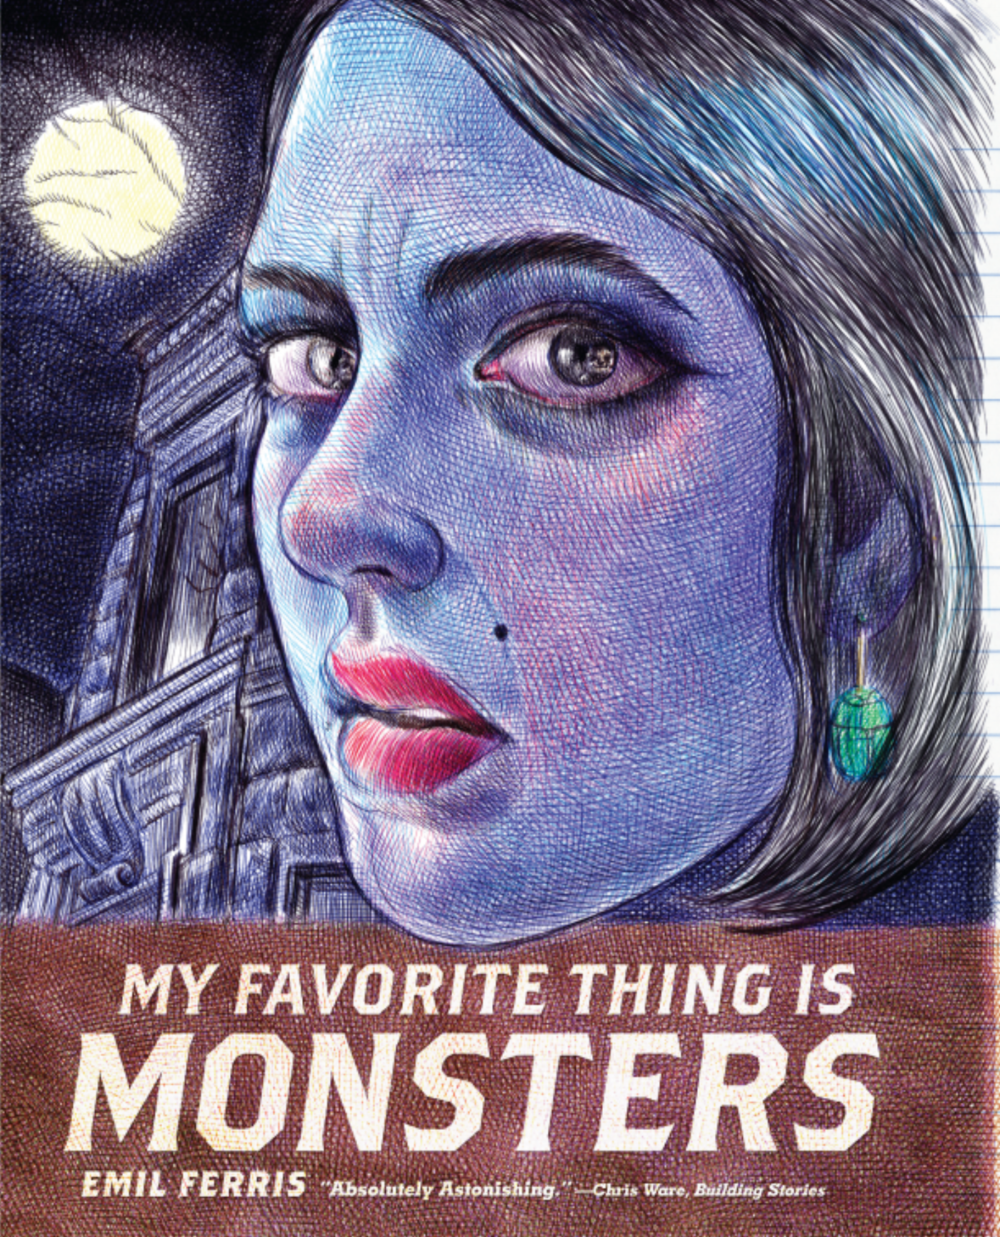 Emil Ferris. My Favourite Thing is Monsters. Fantagraphics. $52.99, 386 pp., ISBN:9781606999592